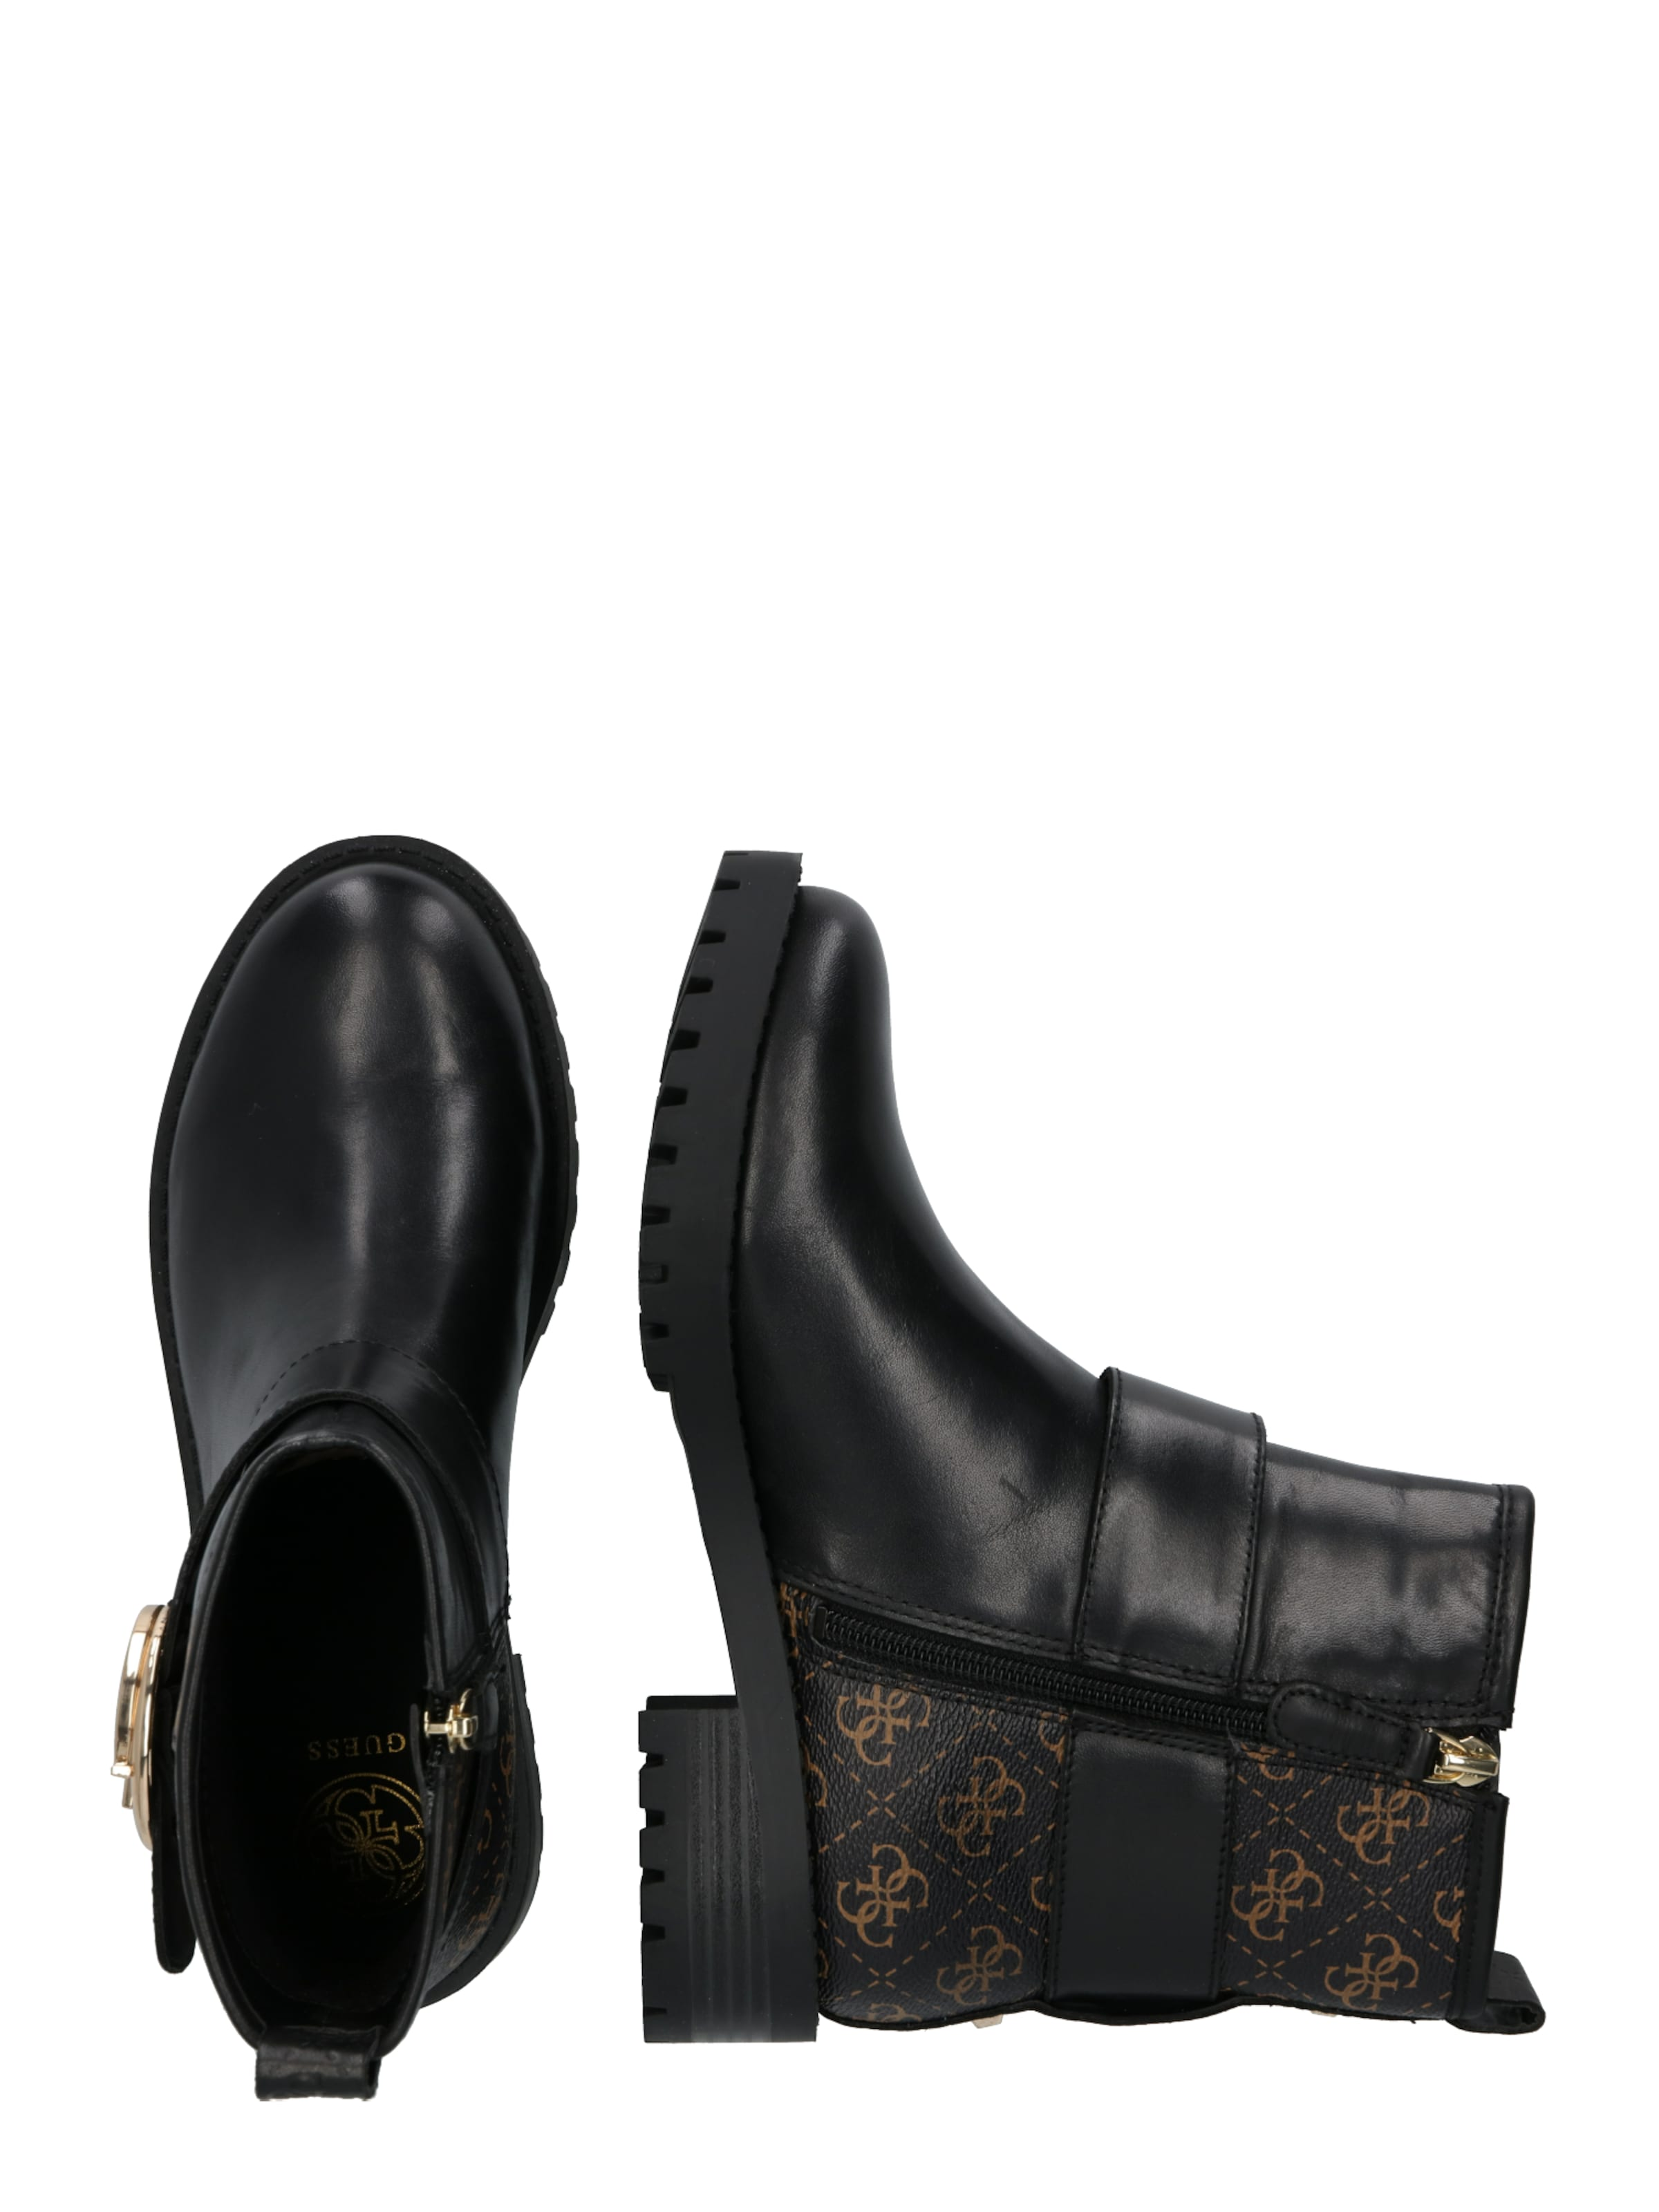 En MarronNoir Bottines 'hadasan' Bottines Guess Guess 'hadasan' NwXO8nPk0